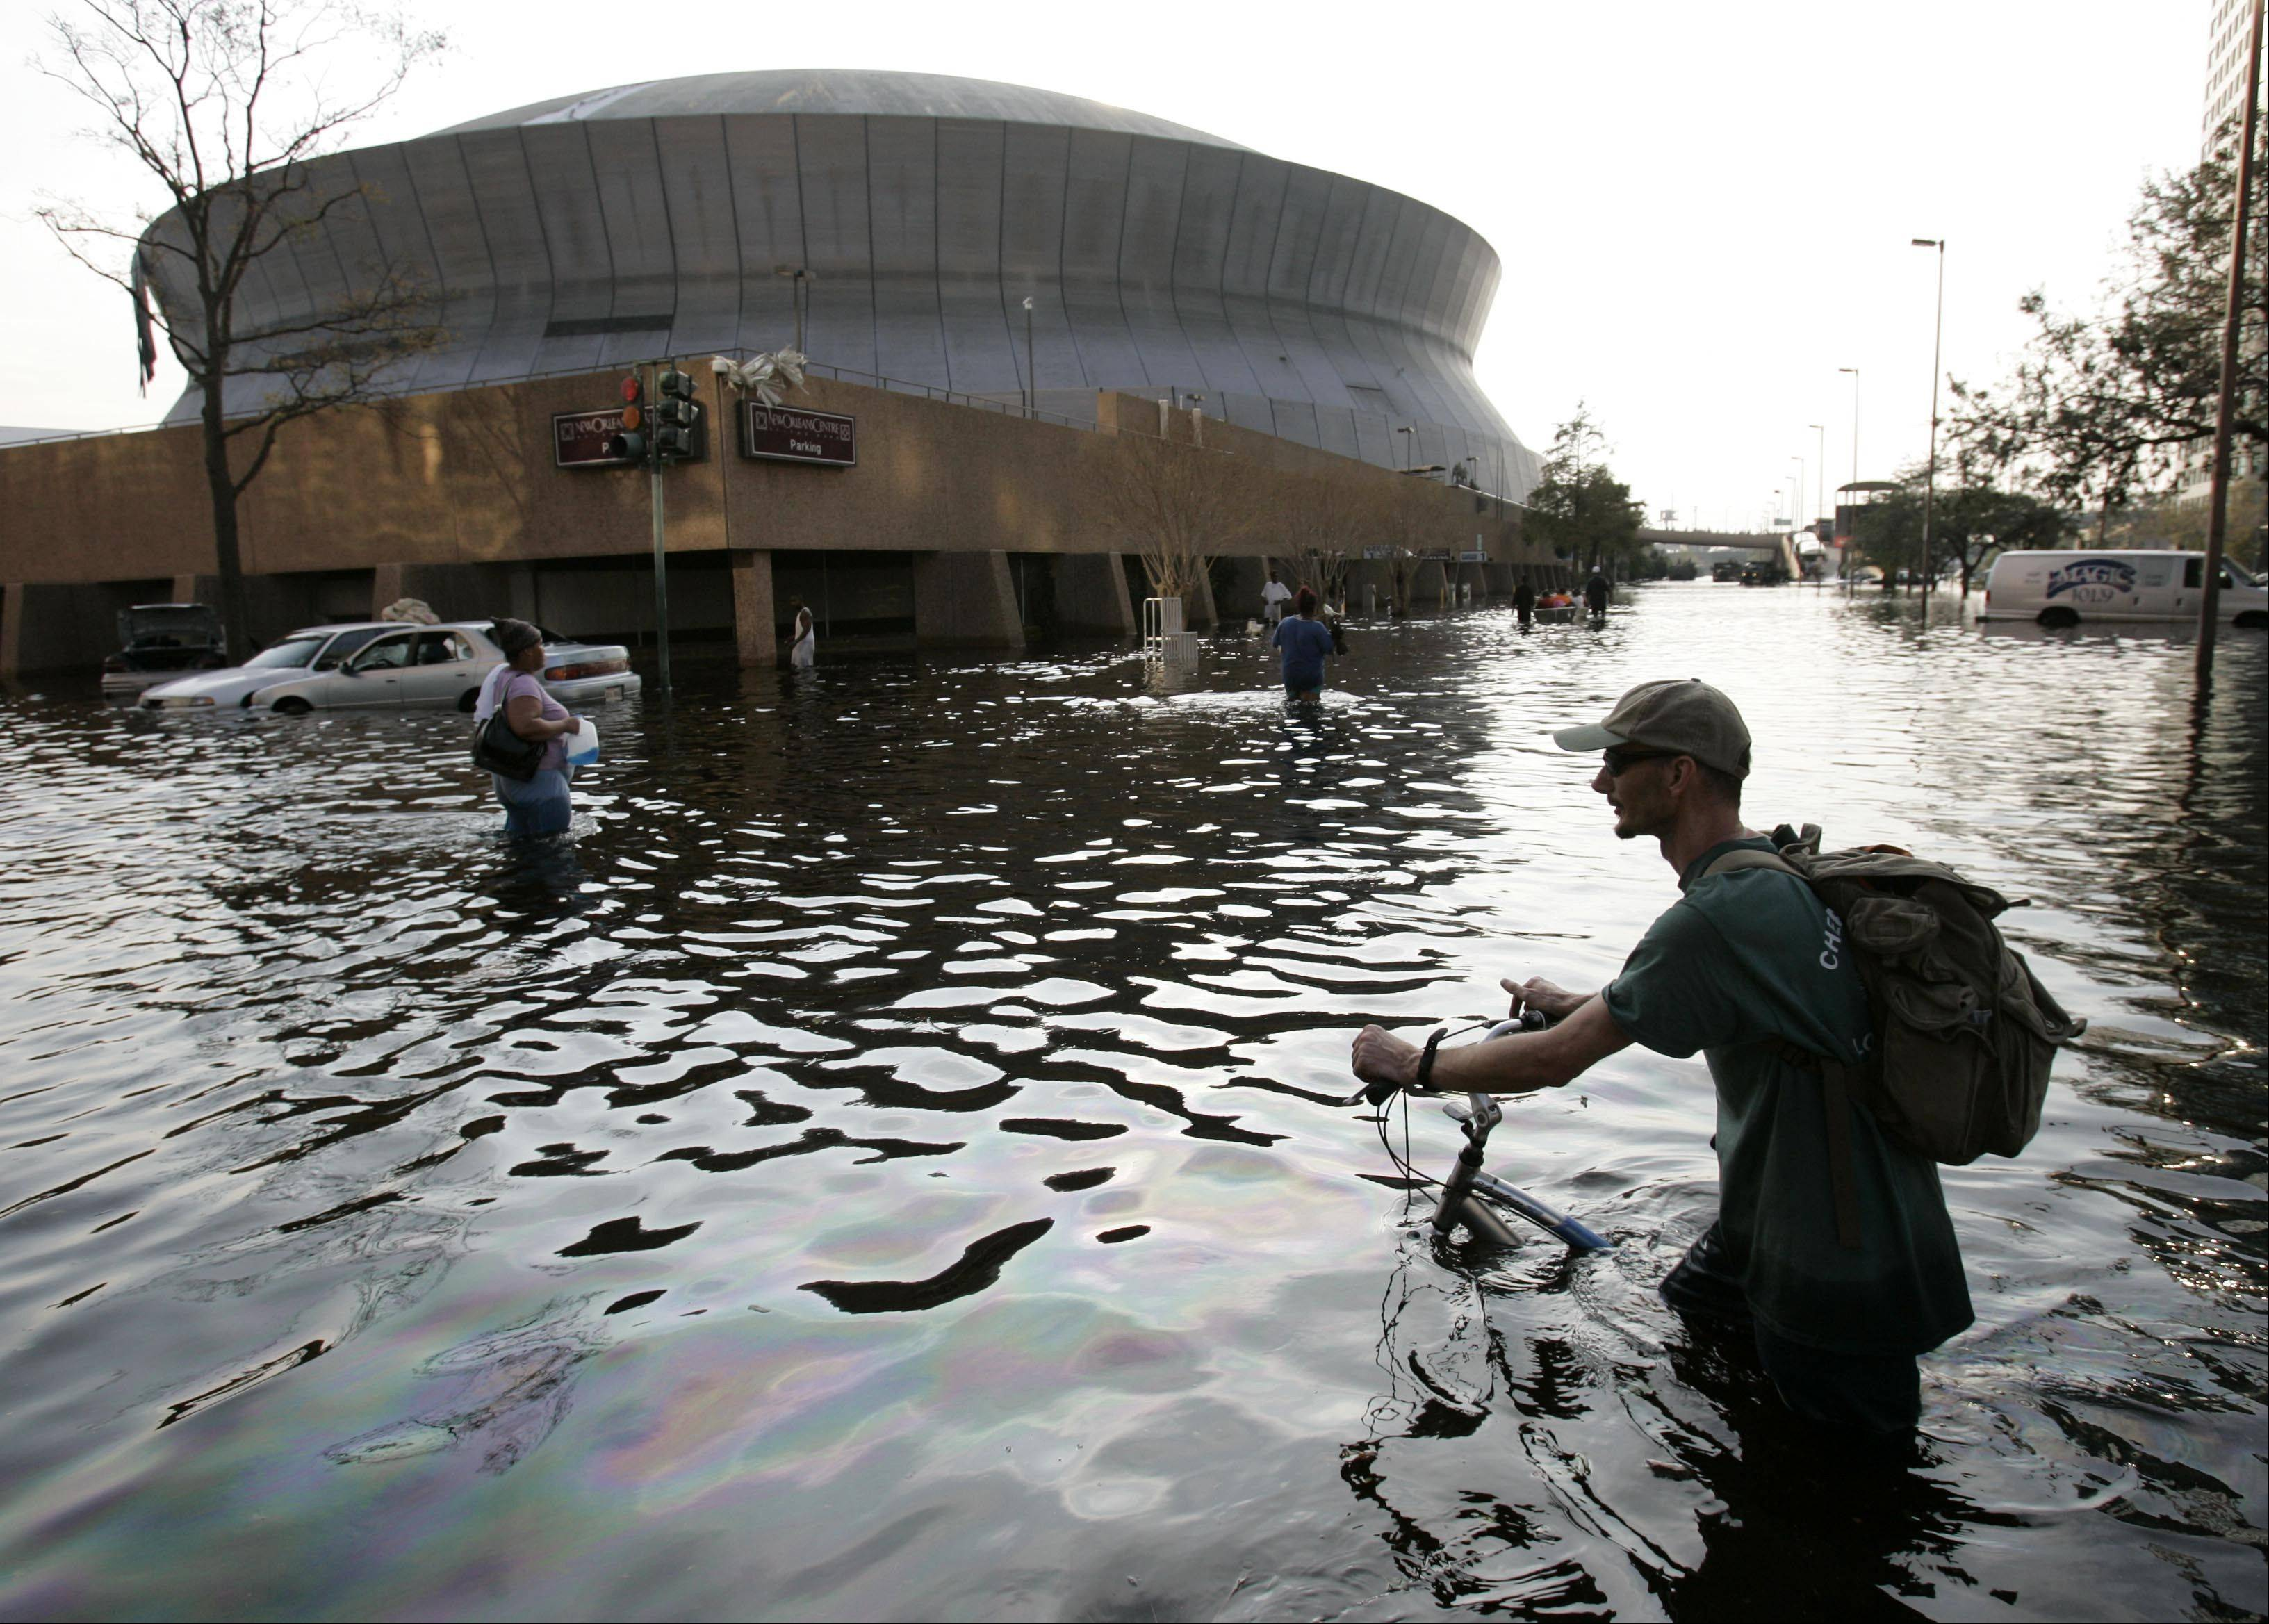 This Aug, 31, 2005 file photo shows a man pushing his bicycle through flood waters near the Superdome in New Orleans after Hurricane Katrina left much of the city under water.